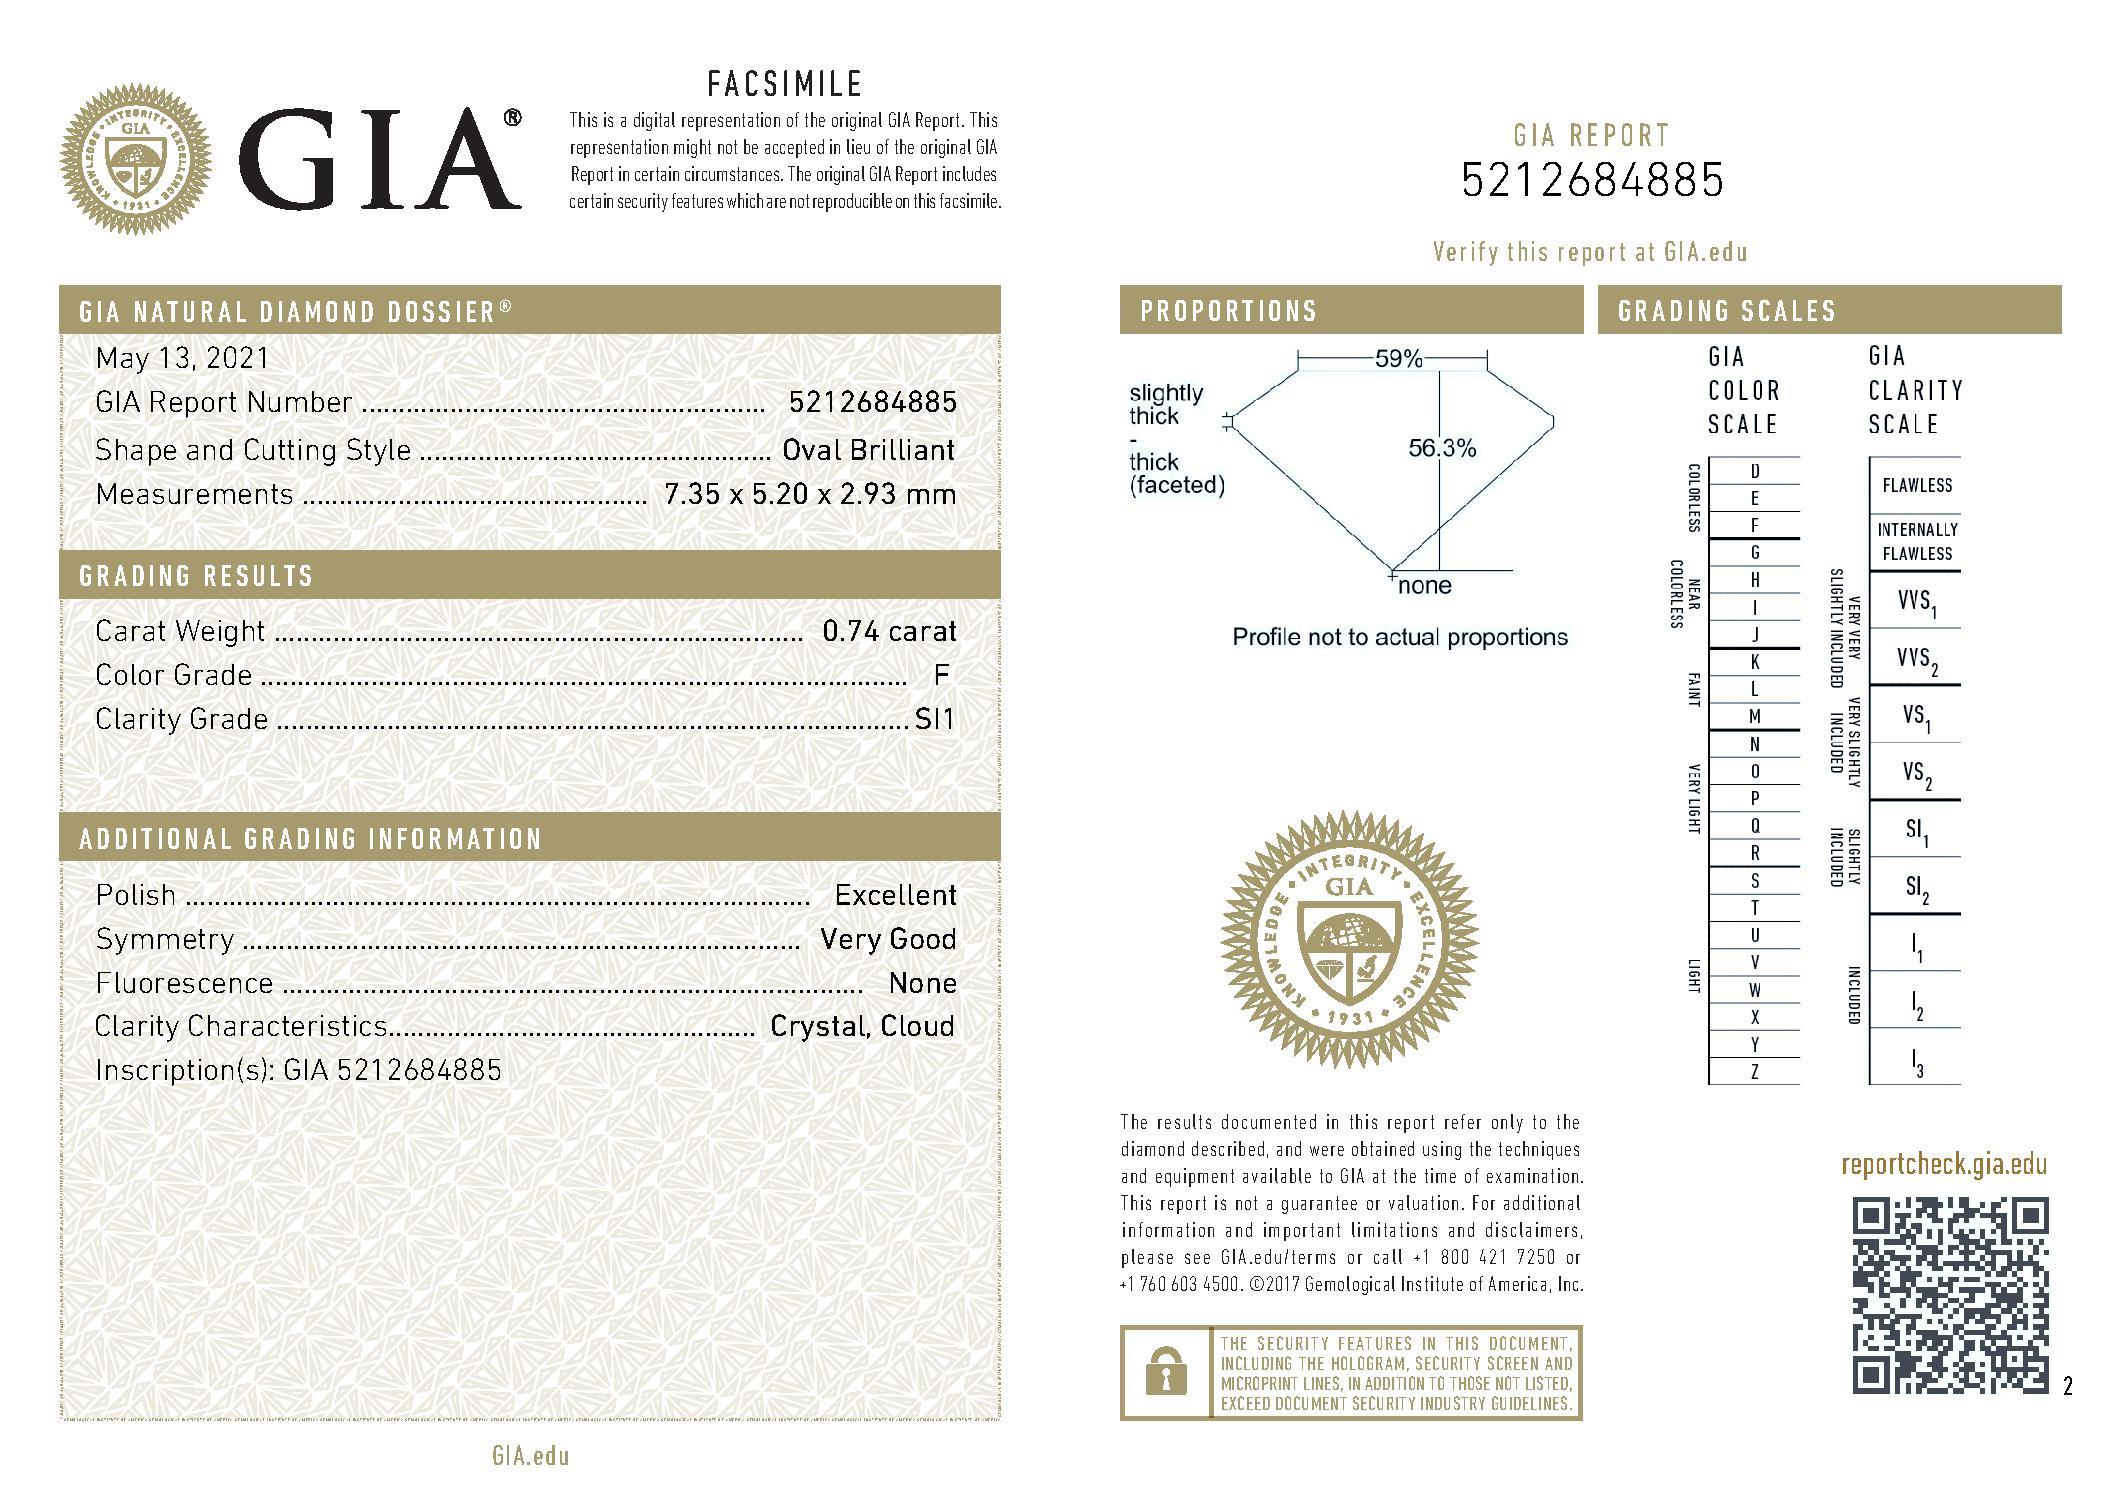 This is a 0.74 carat oval shape, F color, SI1 clarity natural diamond accompanied by a GIA grading report.